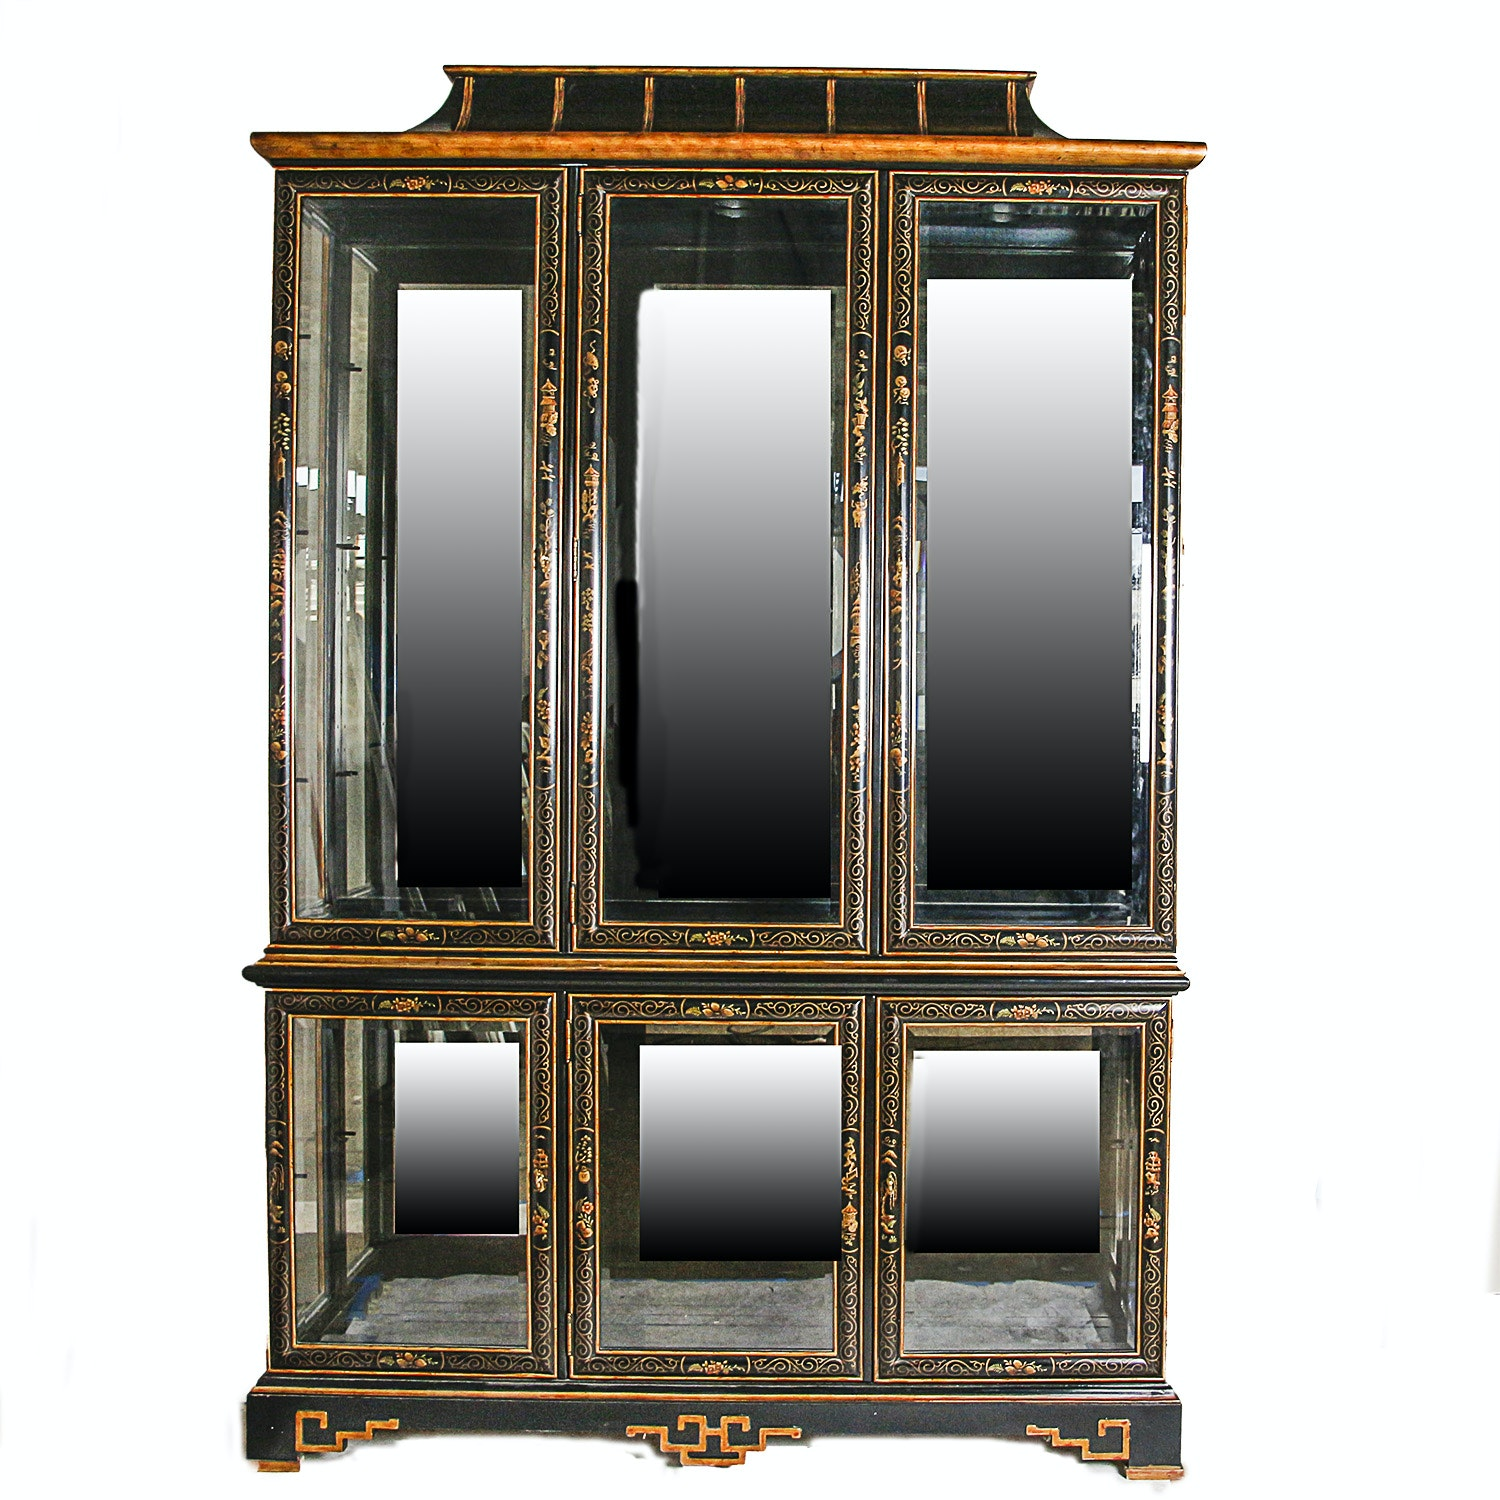 East Asian-Inspired Lighted China Cabinet